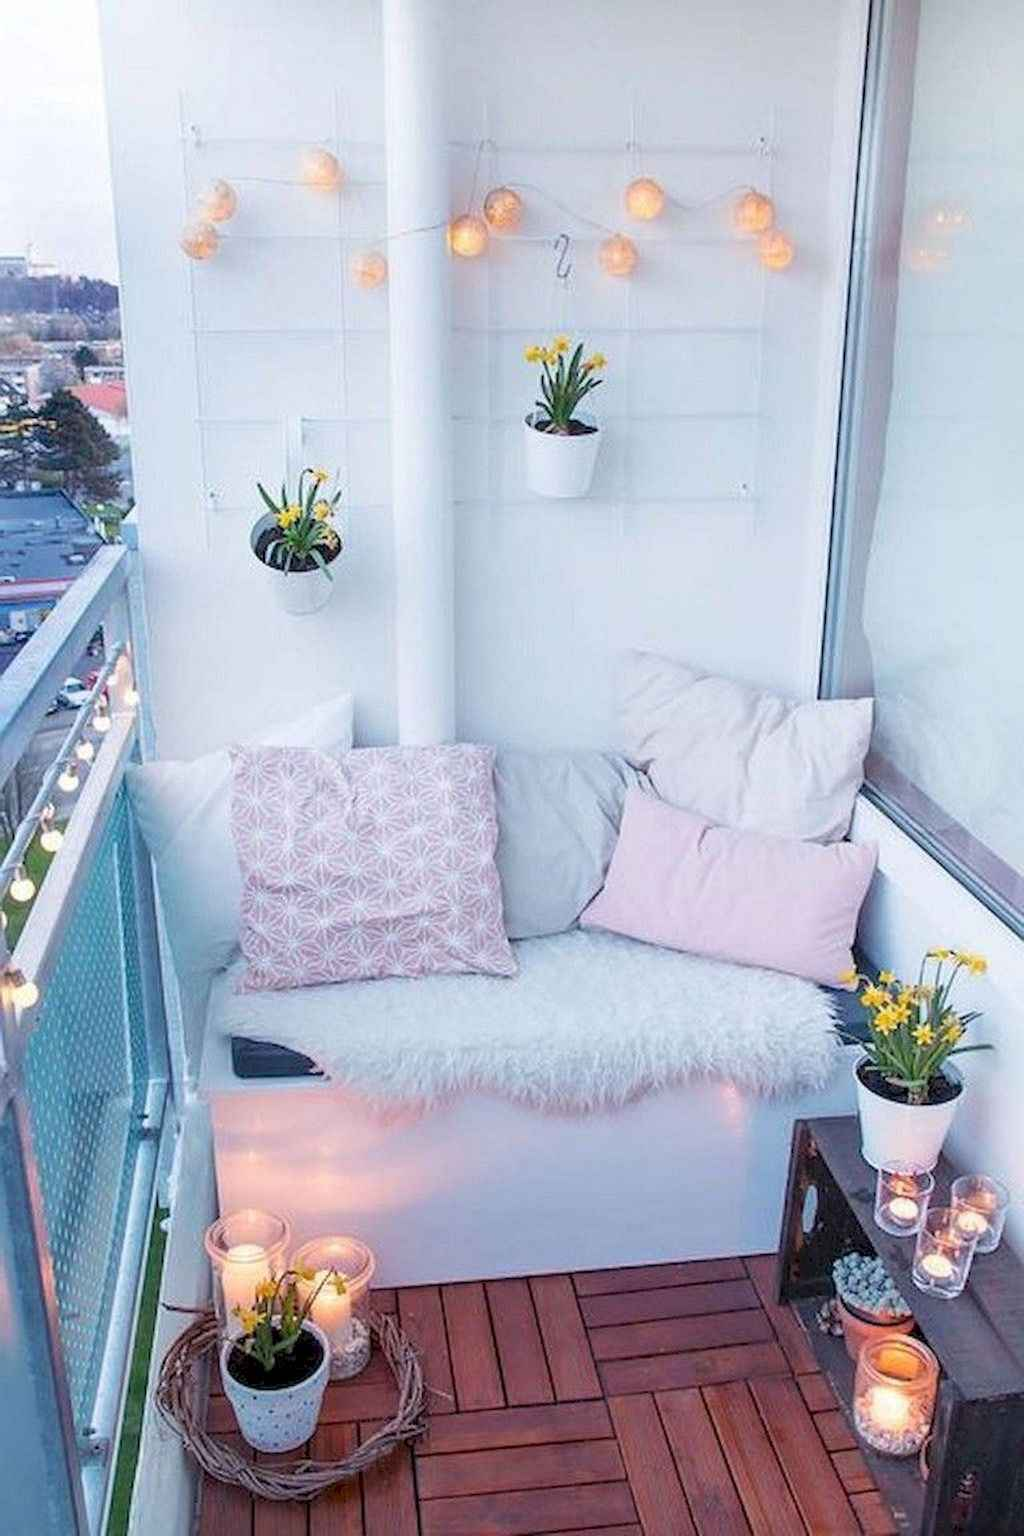 Beautiful First Home Decorating Ideas On A Budget: 64 Cheap And Easy First Apartment Decorating Ideas On A Budget